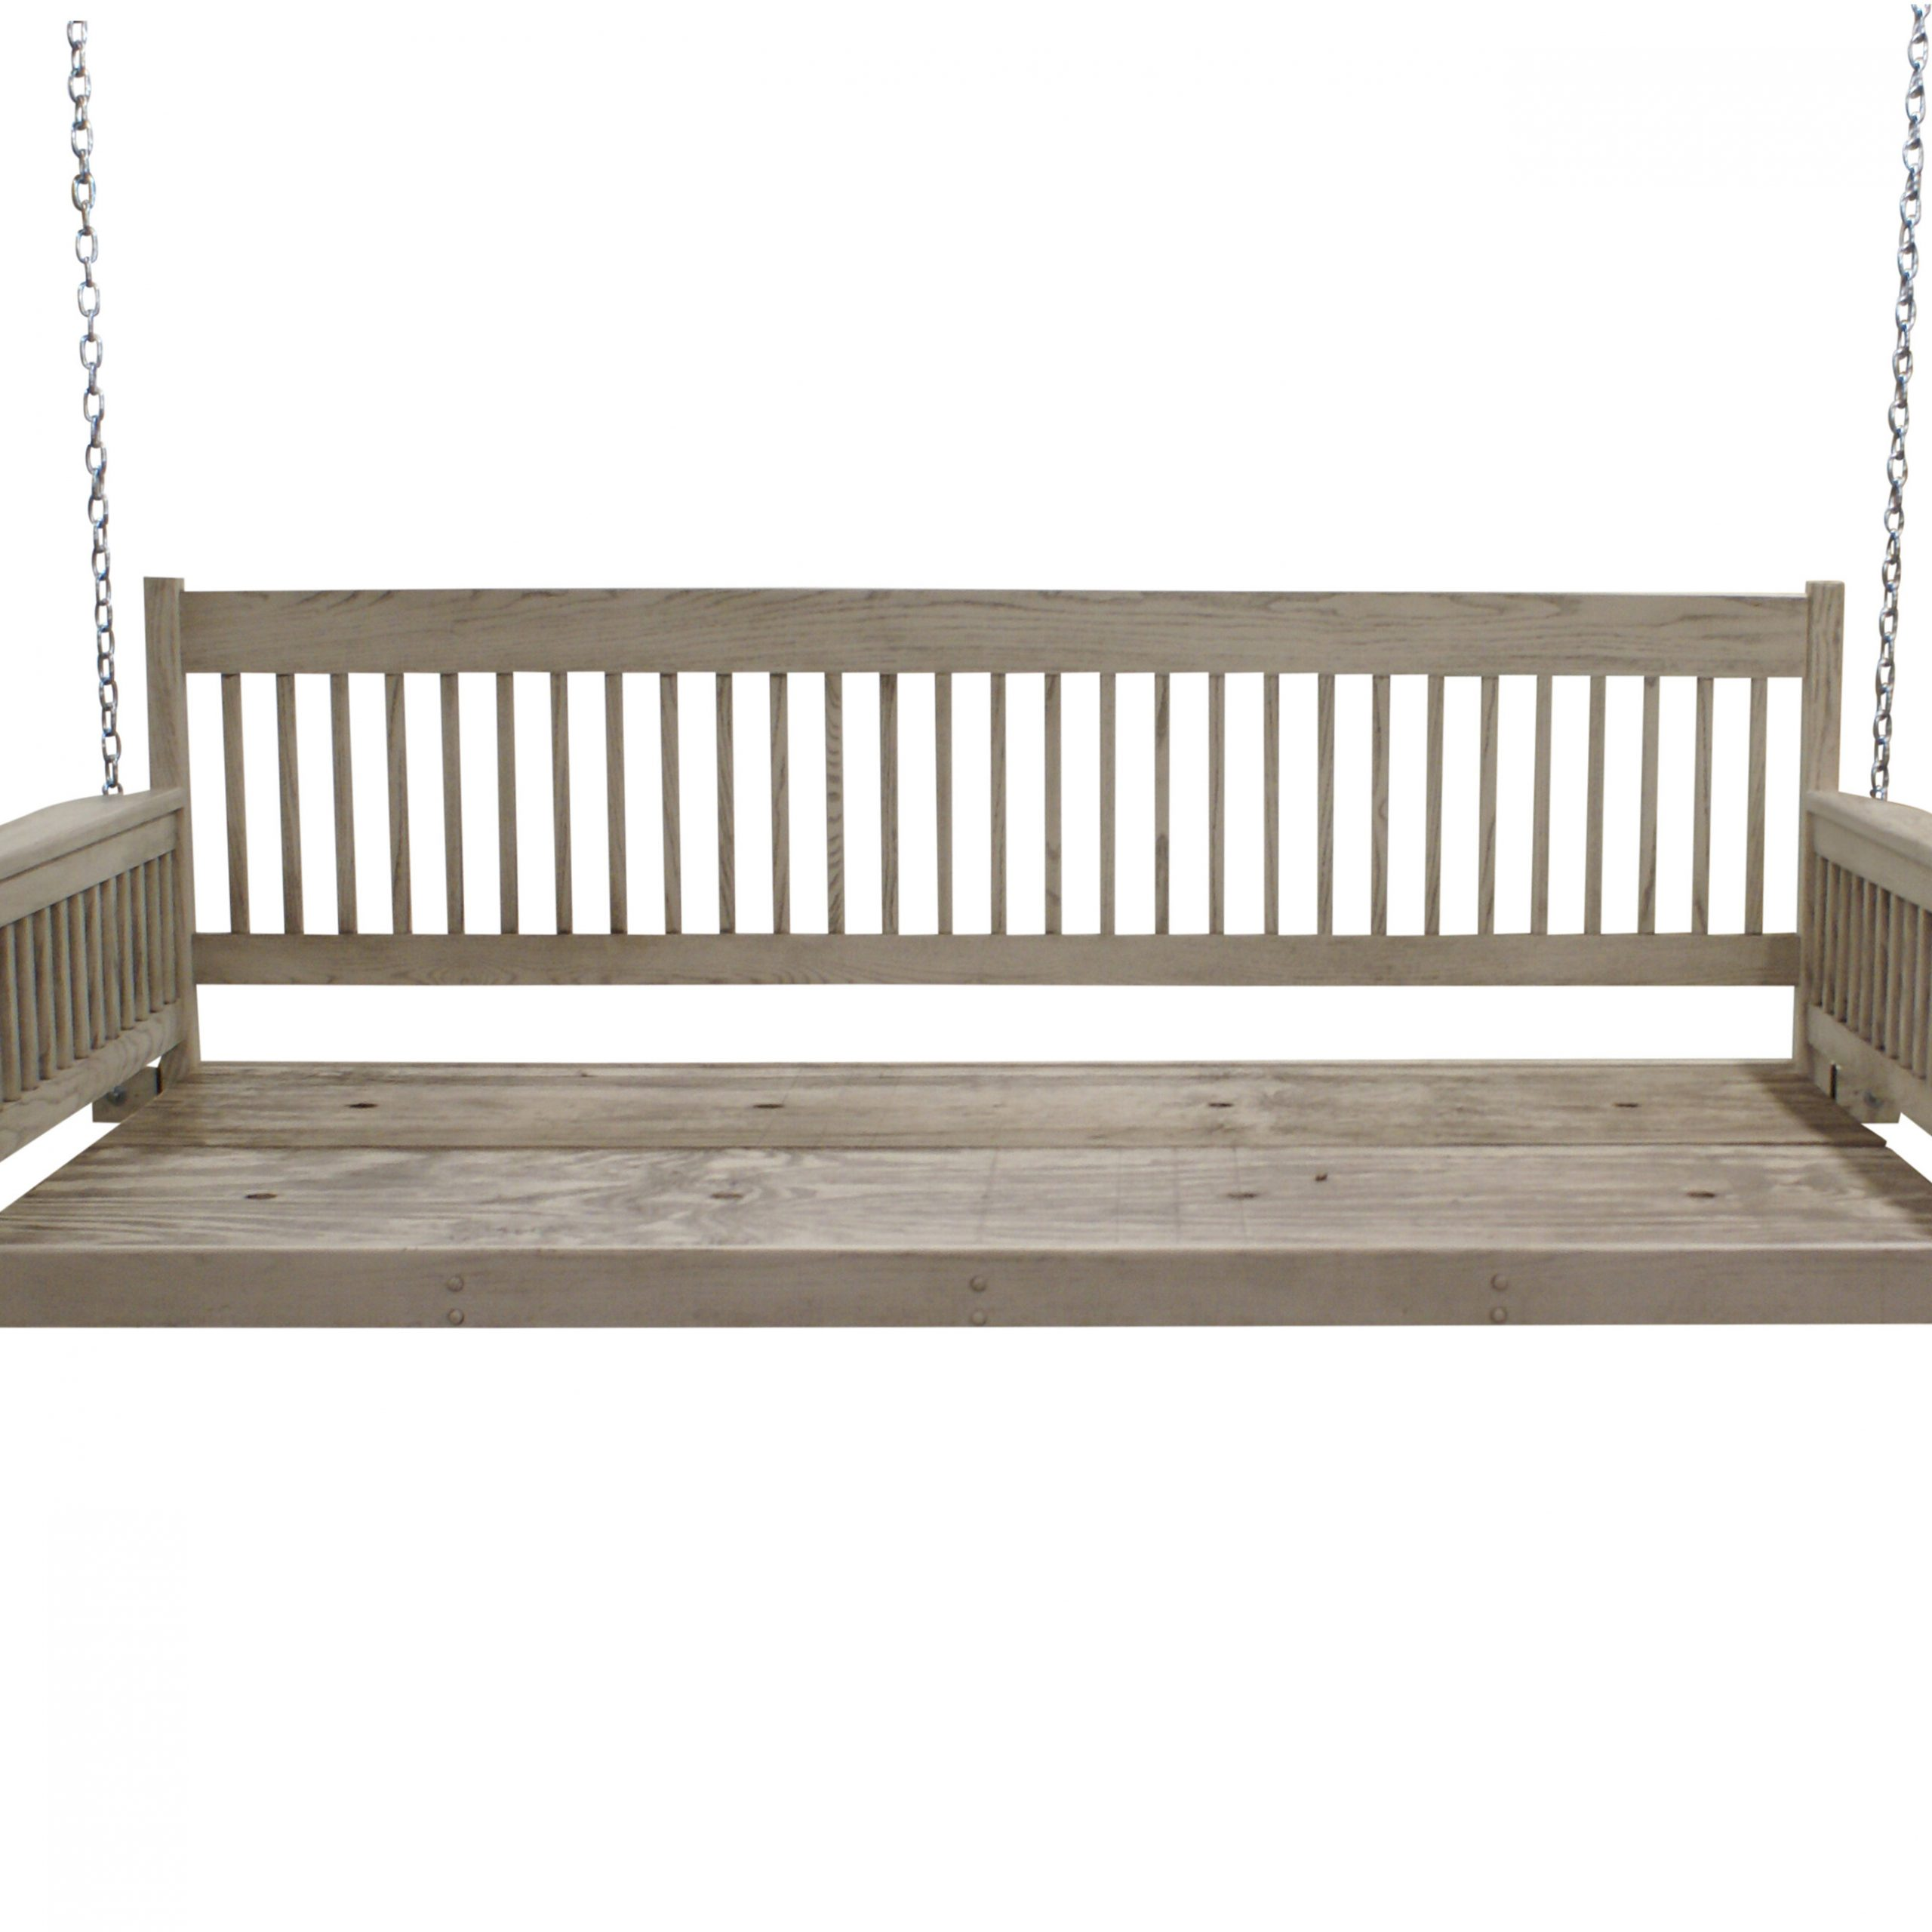 Cuddy Day Bed Porch Swing With Regard To Day Bed Porch Swings (Image 4 of 25)